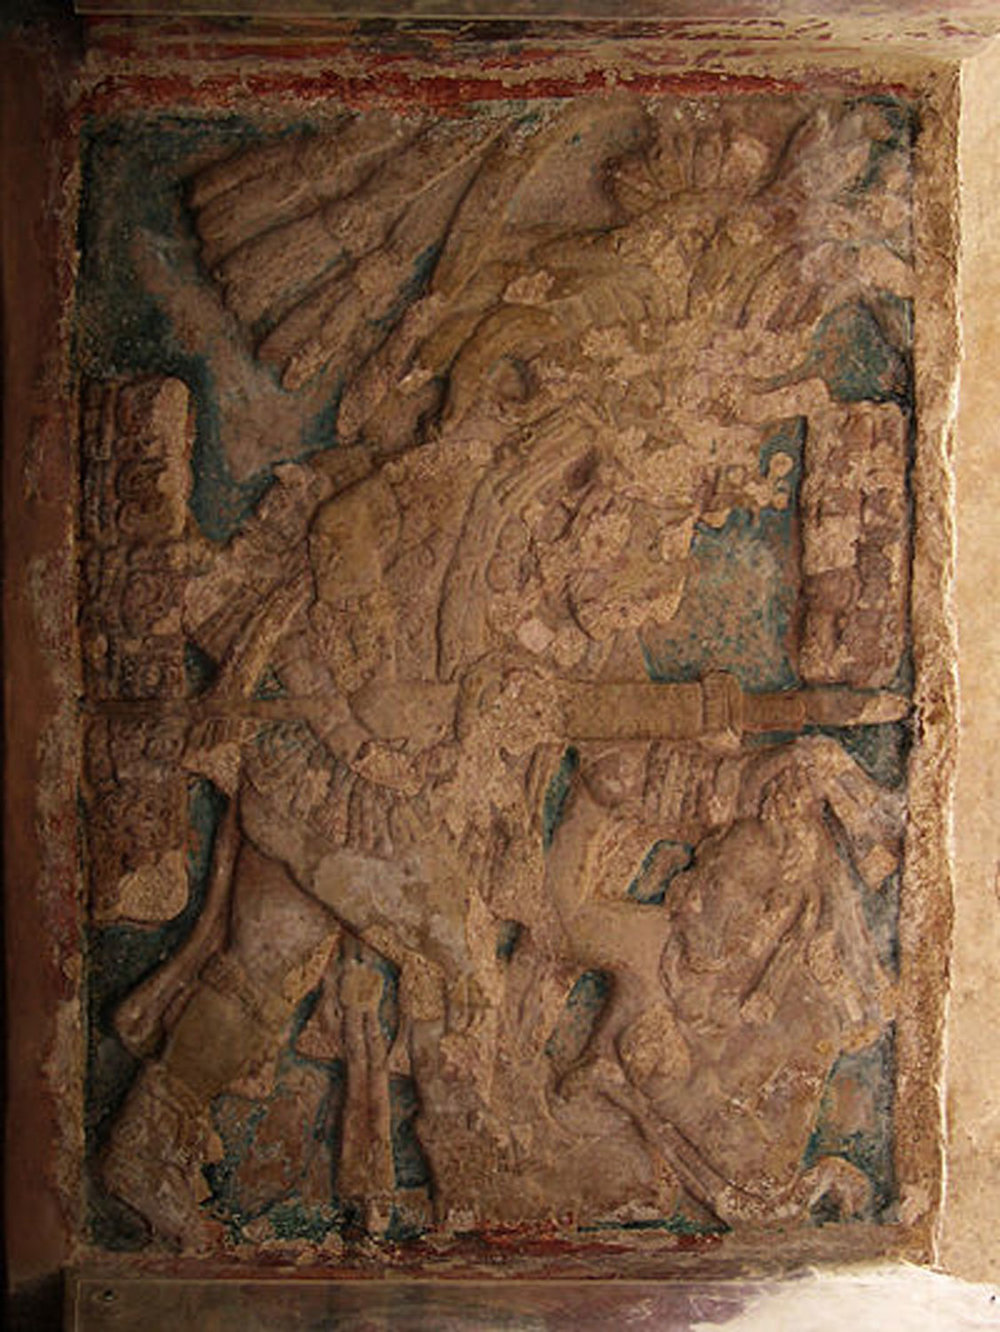 Lintel 1 in Bonampak depicts Yajaw Chaan Muwan capturing an enemy on January 12, 787 AD:  mesoweb.com .